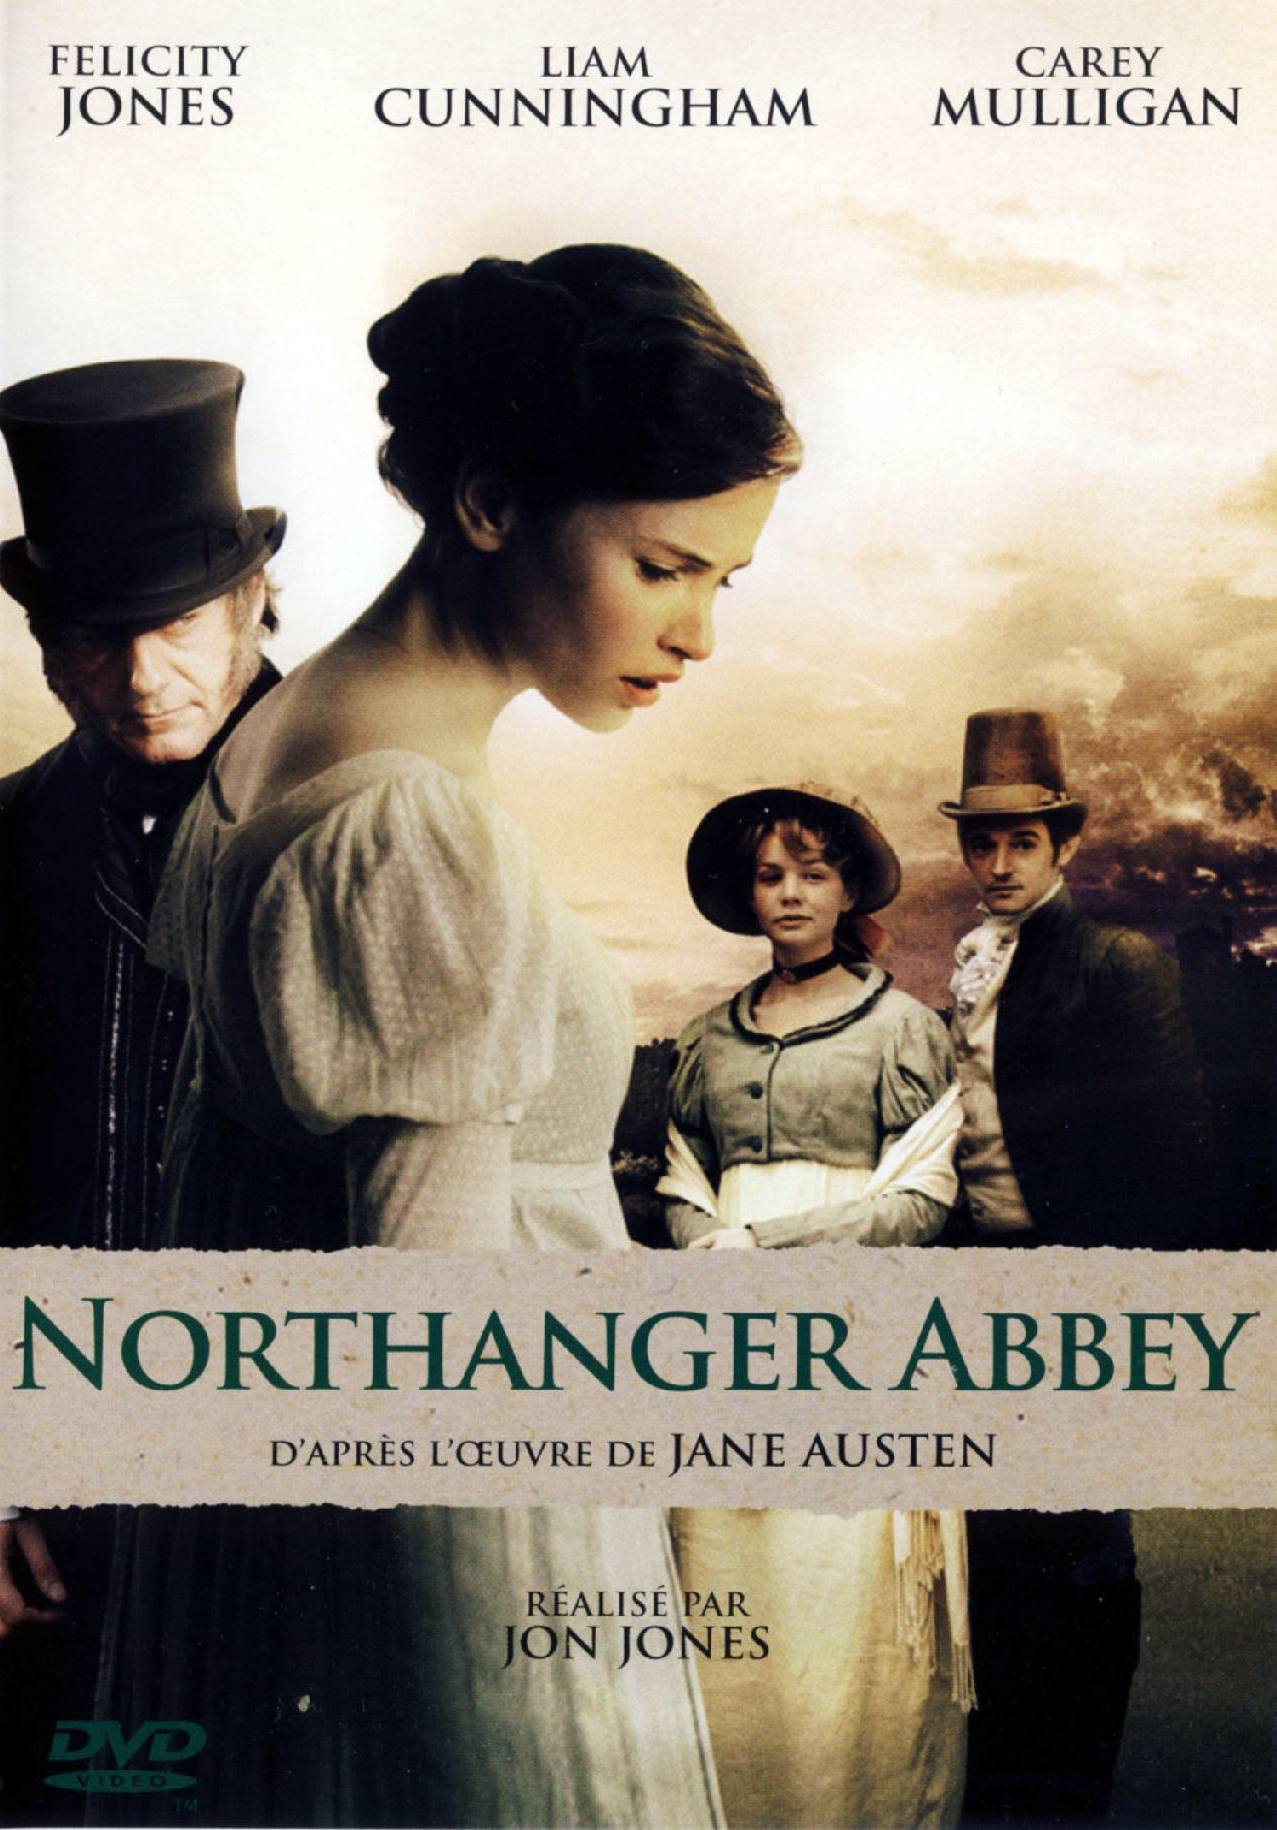 affiche du film Northanger Abbey (TV)